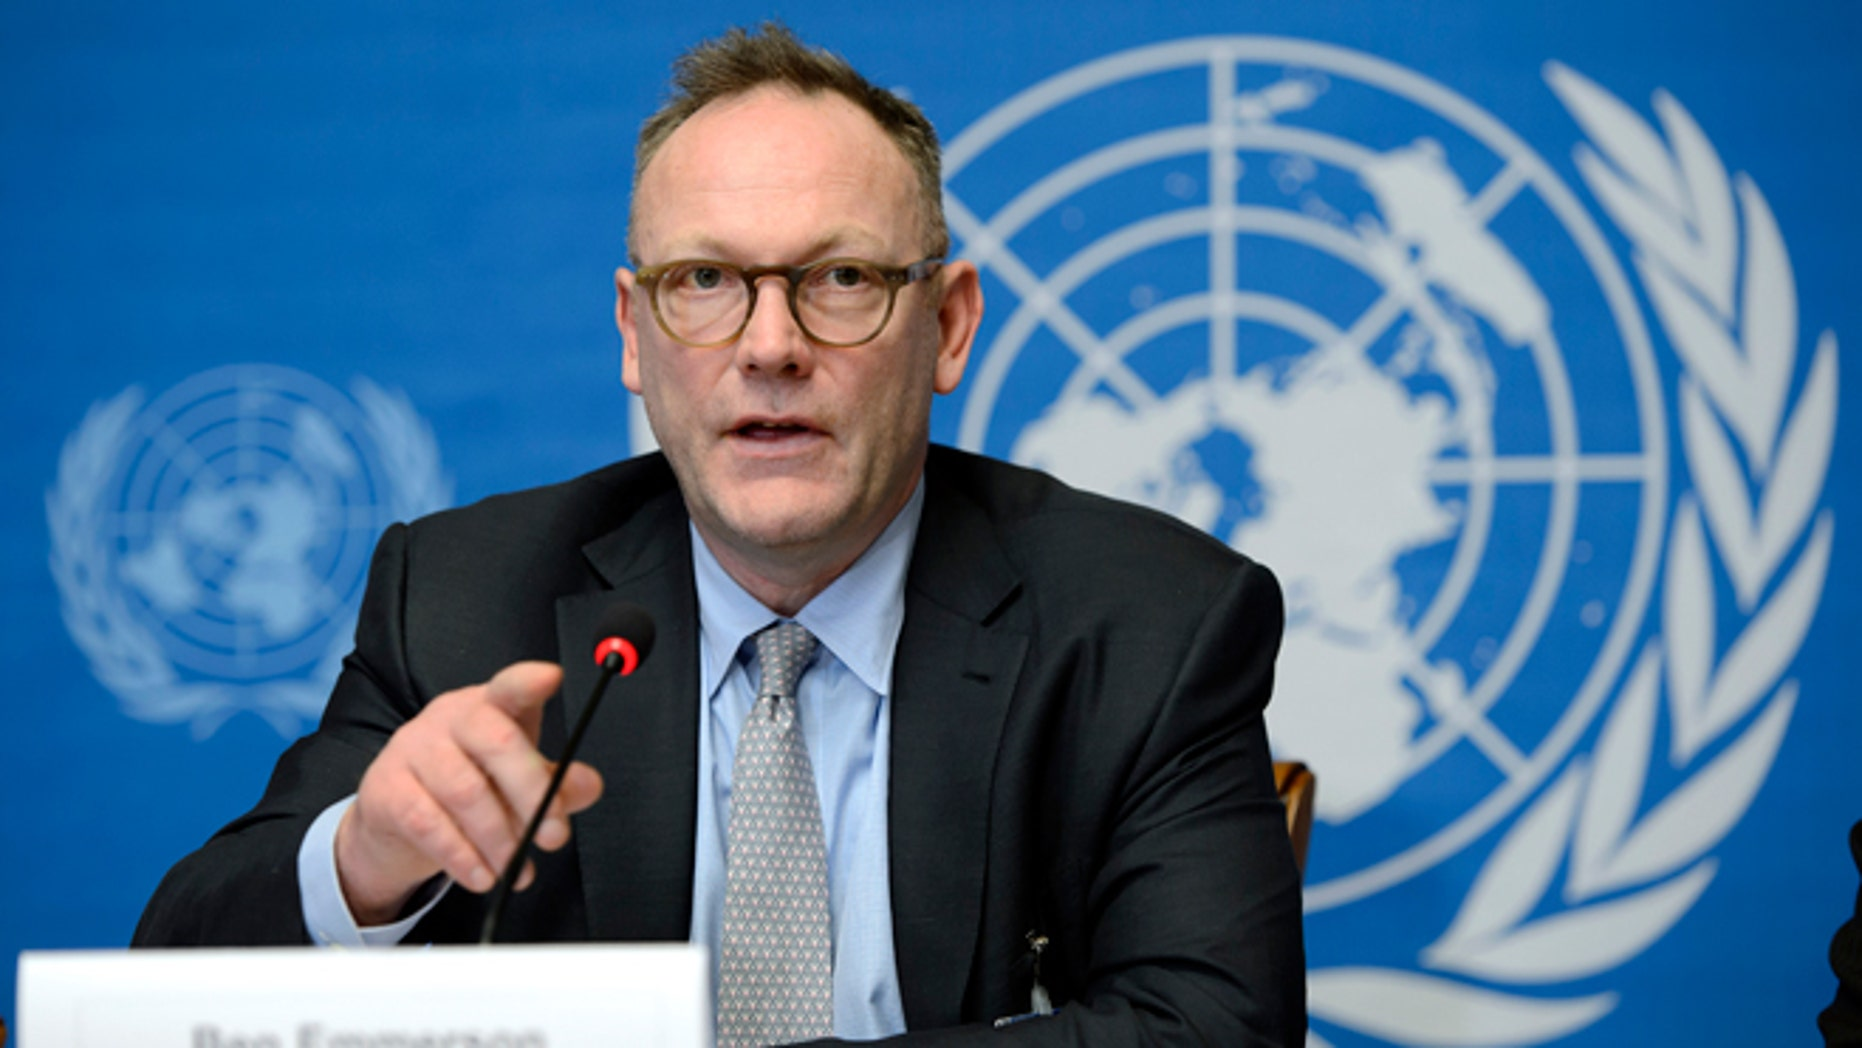 FILE -- March 12, 2014: Ben Emmerson, UN Special Rapporteur on Counter Terrorism and Human Rights speaks during a press conference about his annual report to the Human Rights Council on the use of remotely piloted aircraft, or drones, in extraterritorial lethal counter-terrorism operations, at the European headquarters of the United Nations, in Geneva, Switzerland.